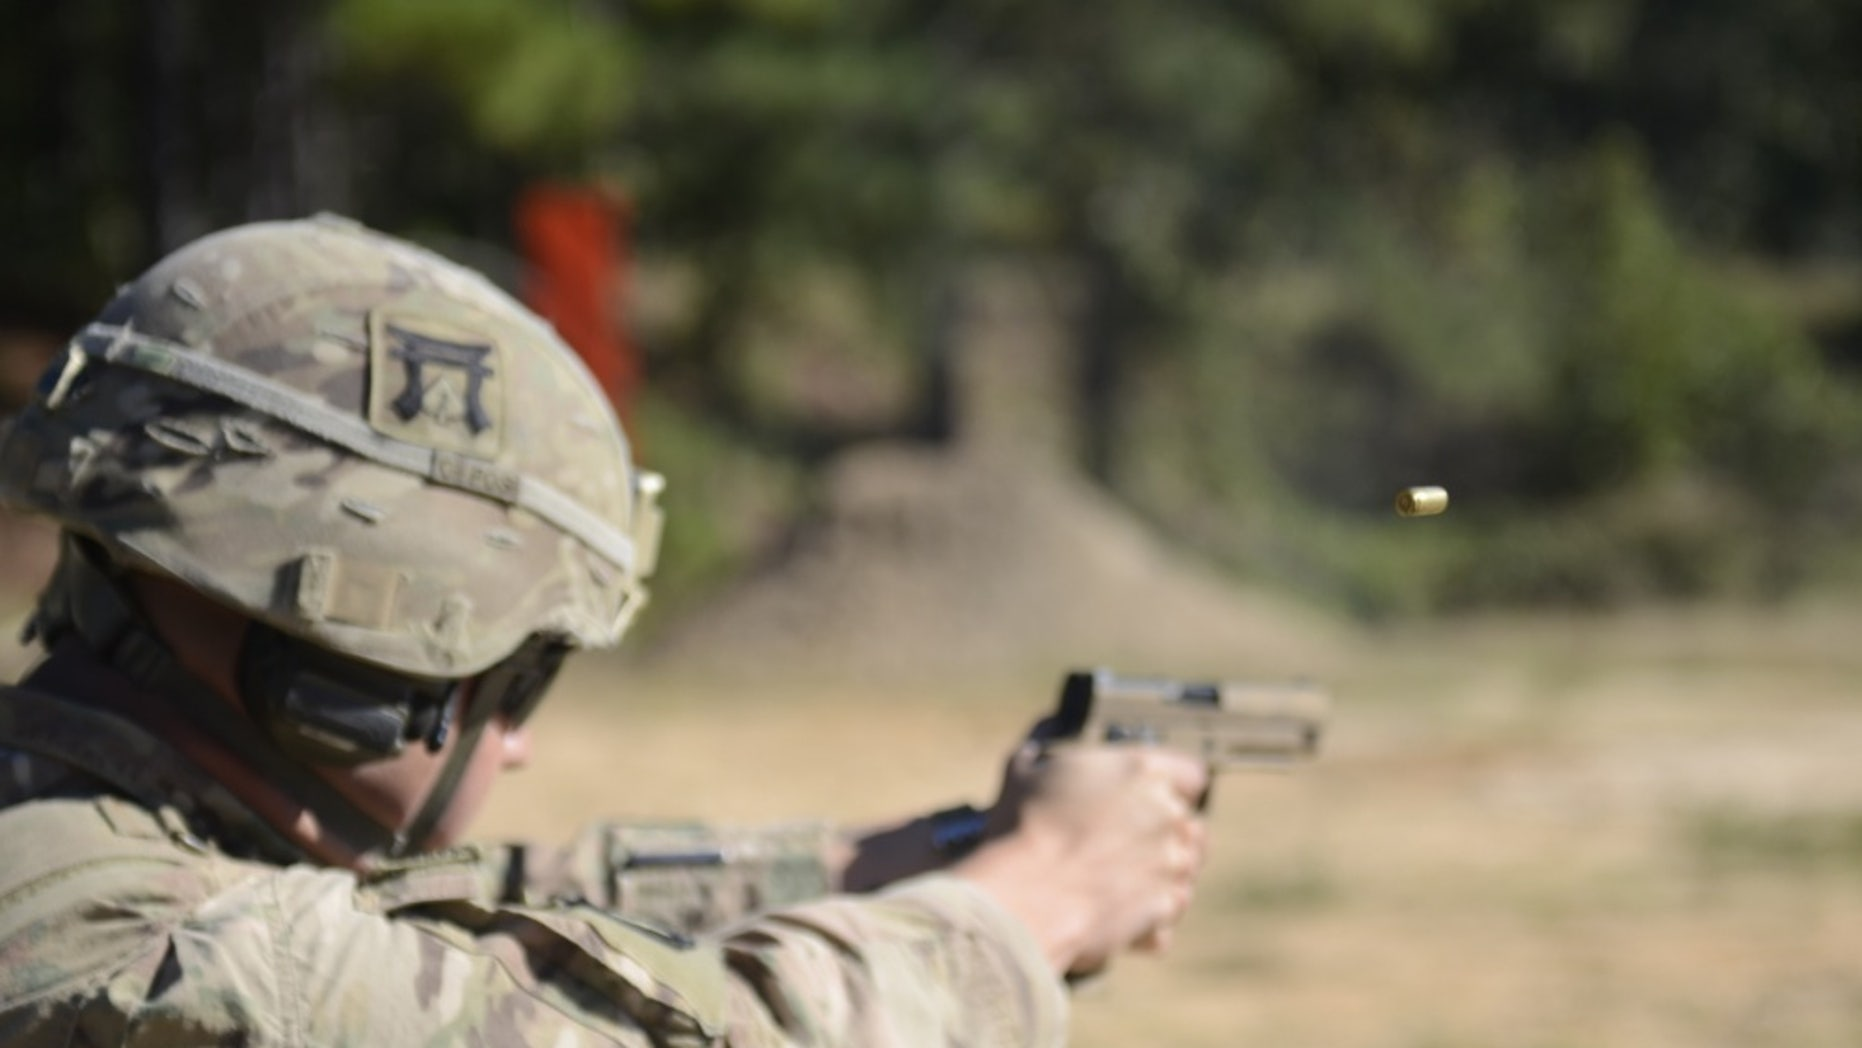 File photo - U.S. Army Cpl. Christopher Crisler, assigned to 101st Airborne Division, fires his M17 pistol at the 25m target in the U.S. Forces Command Small Arms Competition on Fort Bragg, North Carolina, Oct. 22, 2018.